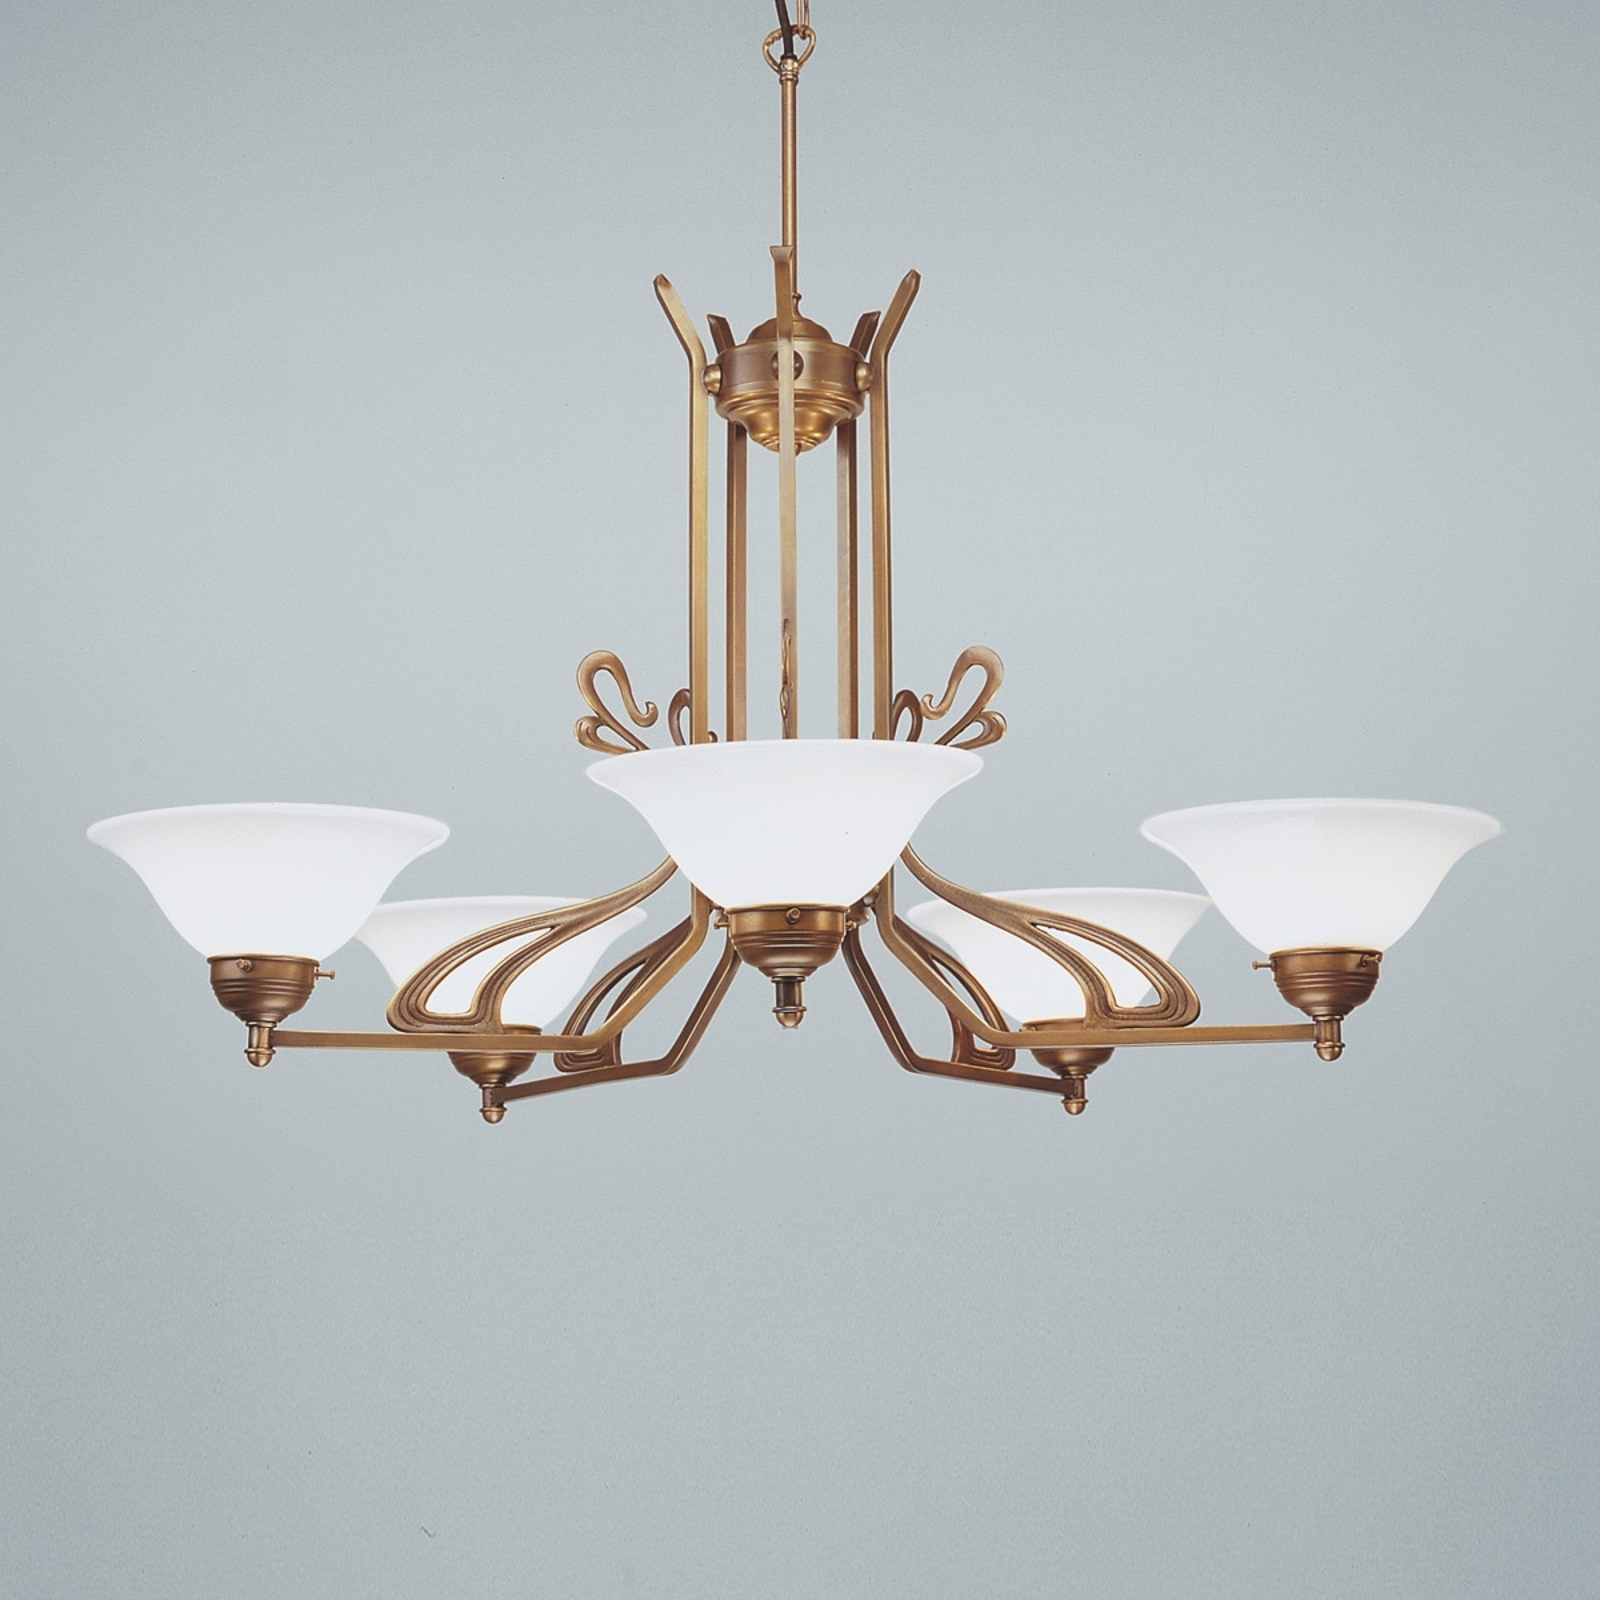 Richard perfectly-formed chandelier_1542077_1